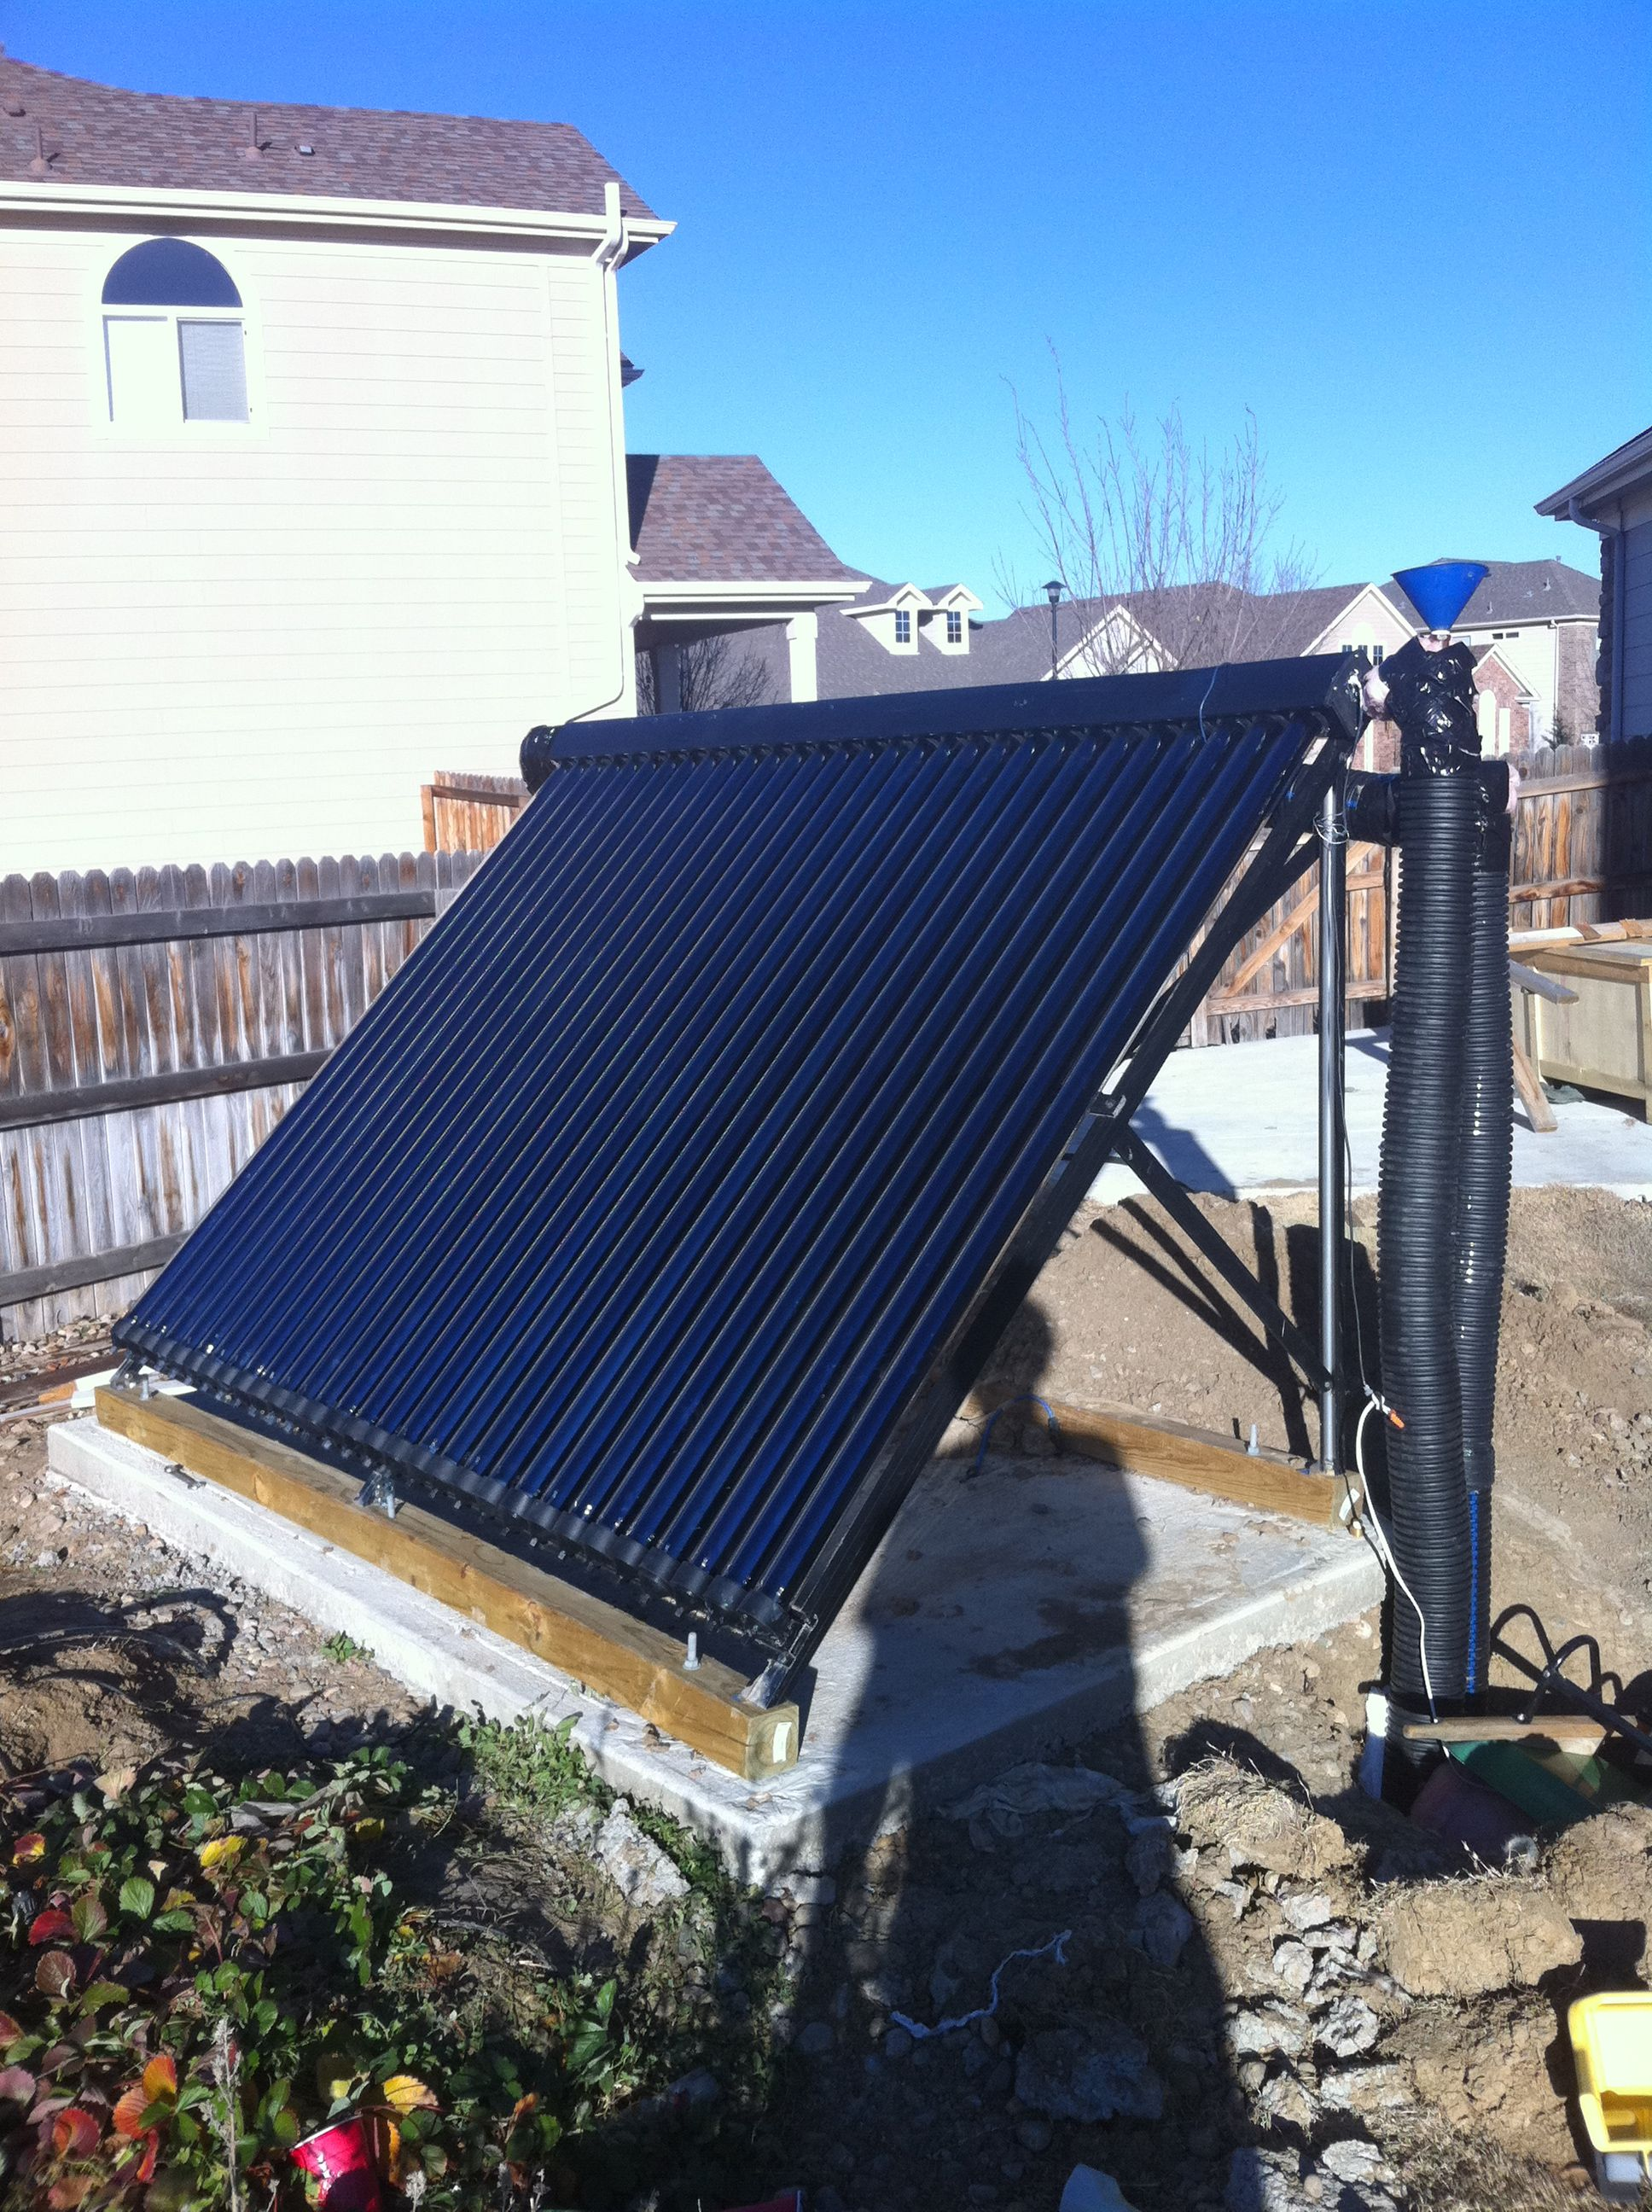 Solar thermal (heats the water) Eriks self constructed solar water heater-  pretty cool.